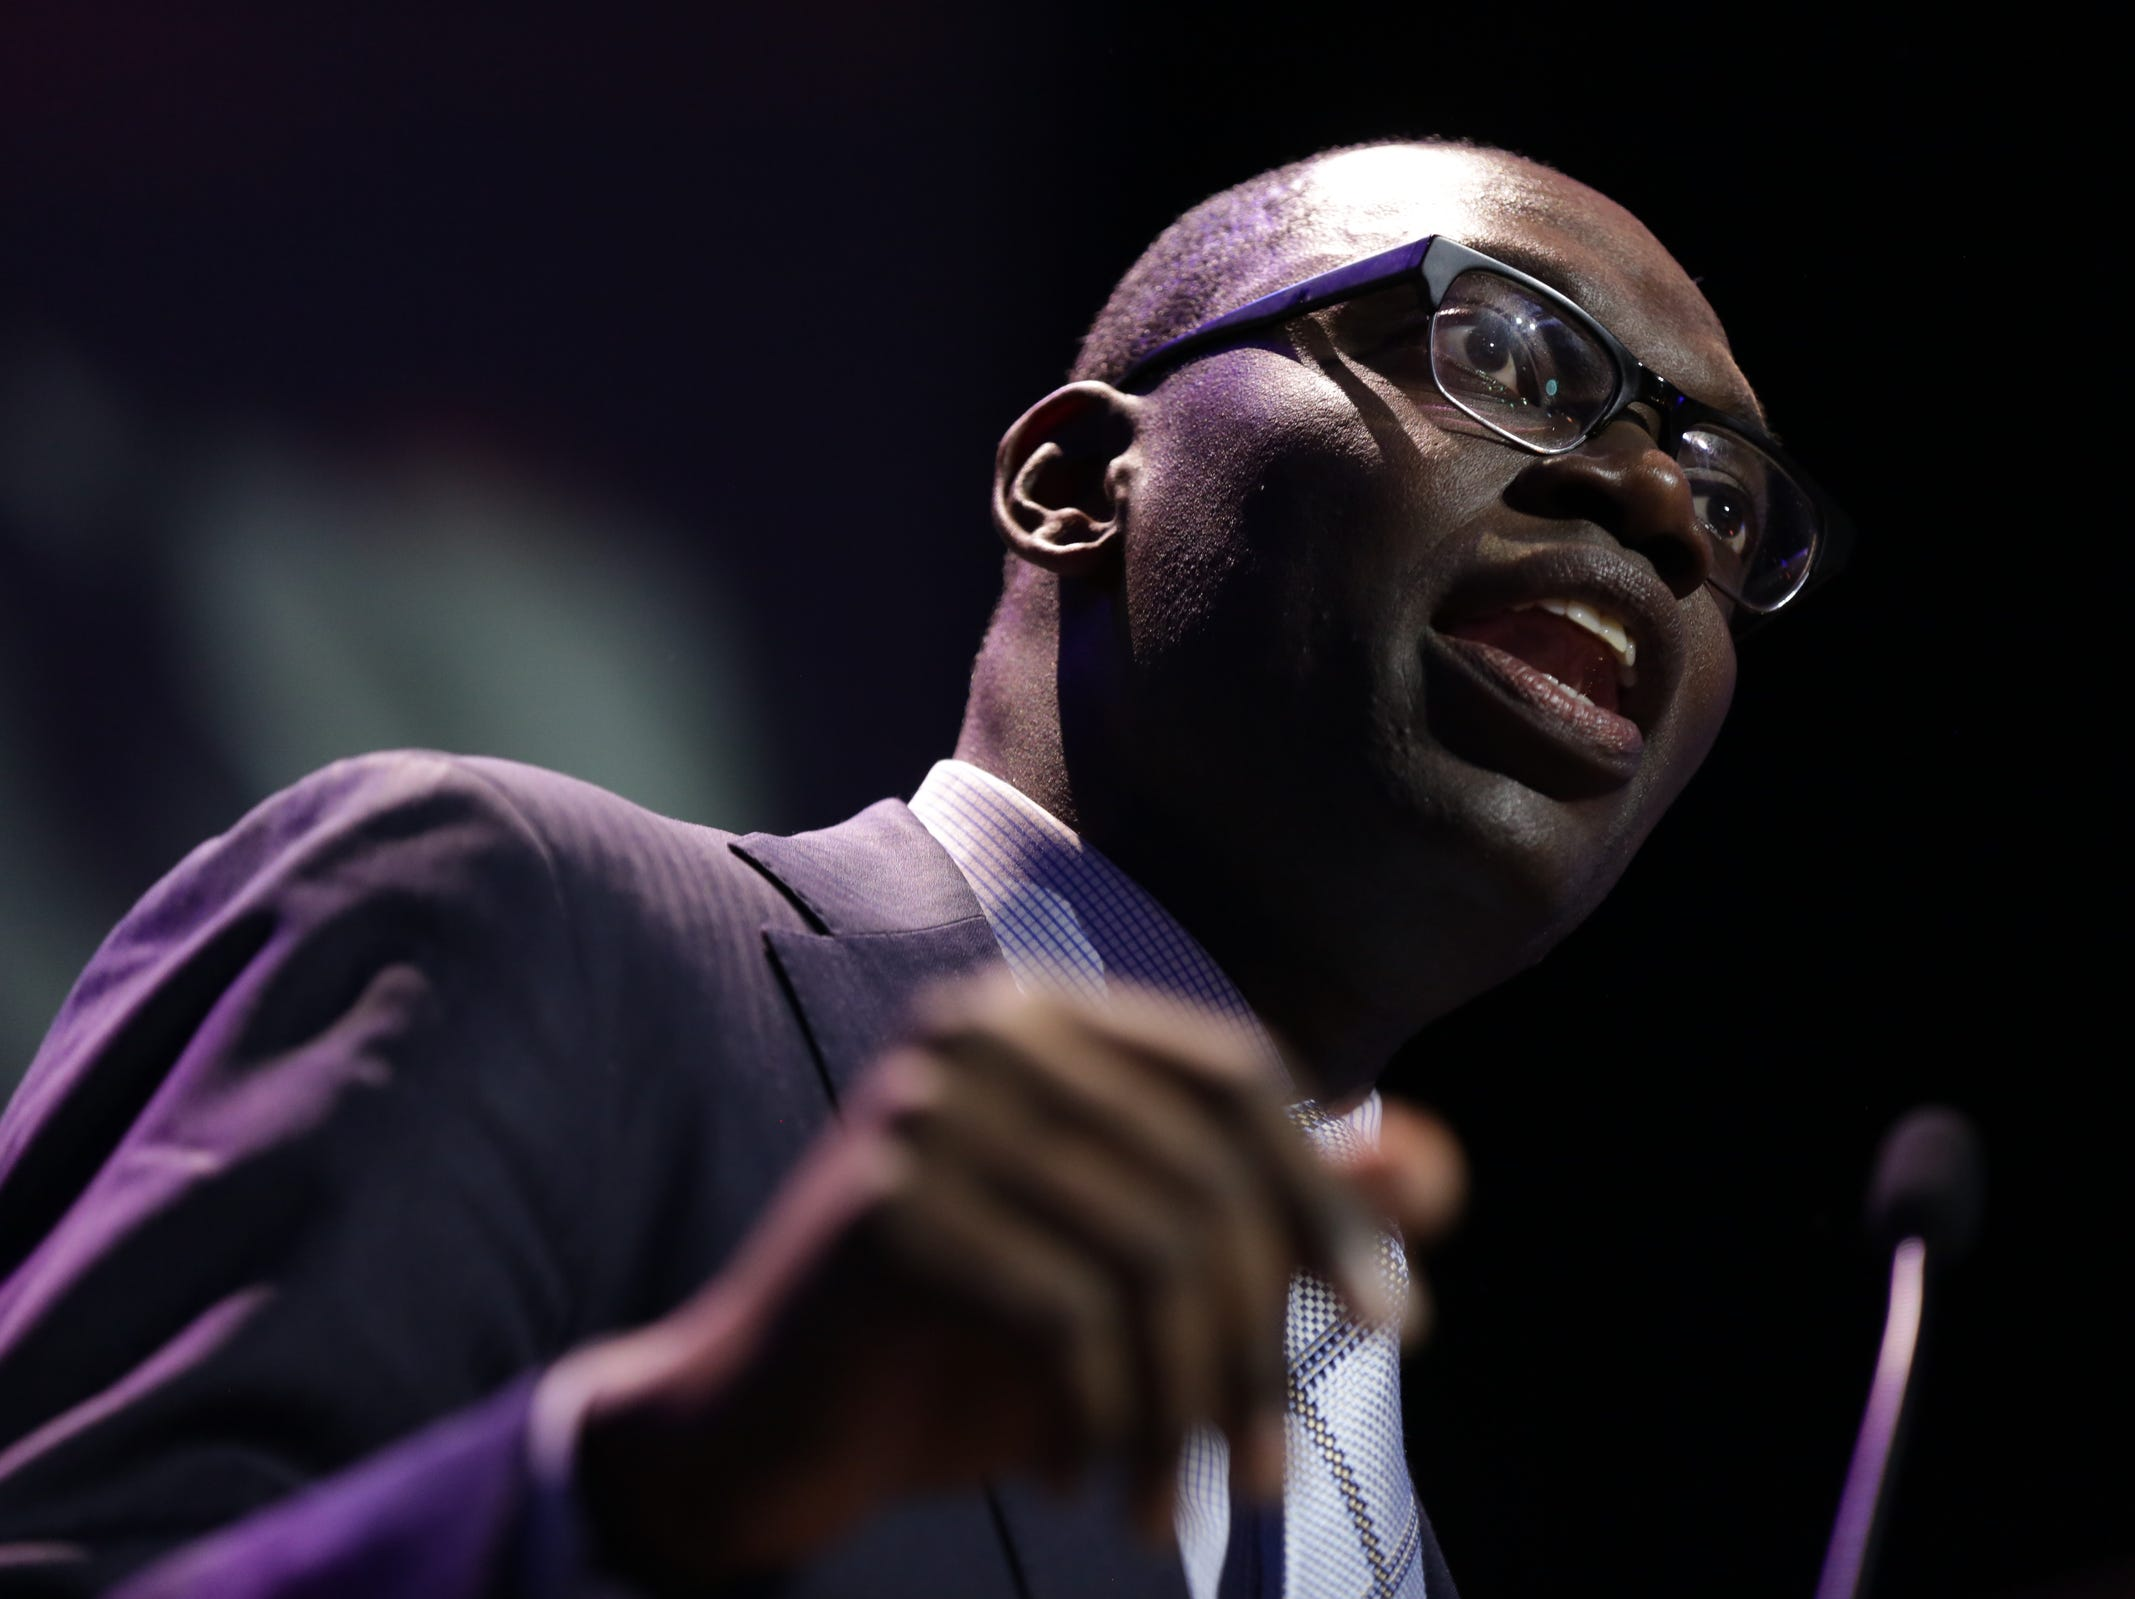 Garlin Gilchrist delivers his victory speech as lieutenant governor with Gretchen Whitmer as governor during a celebration at MotorCity Casino's Sound Board in Detroit on Tuesday, Nov. 6, 2018.